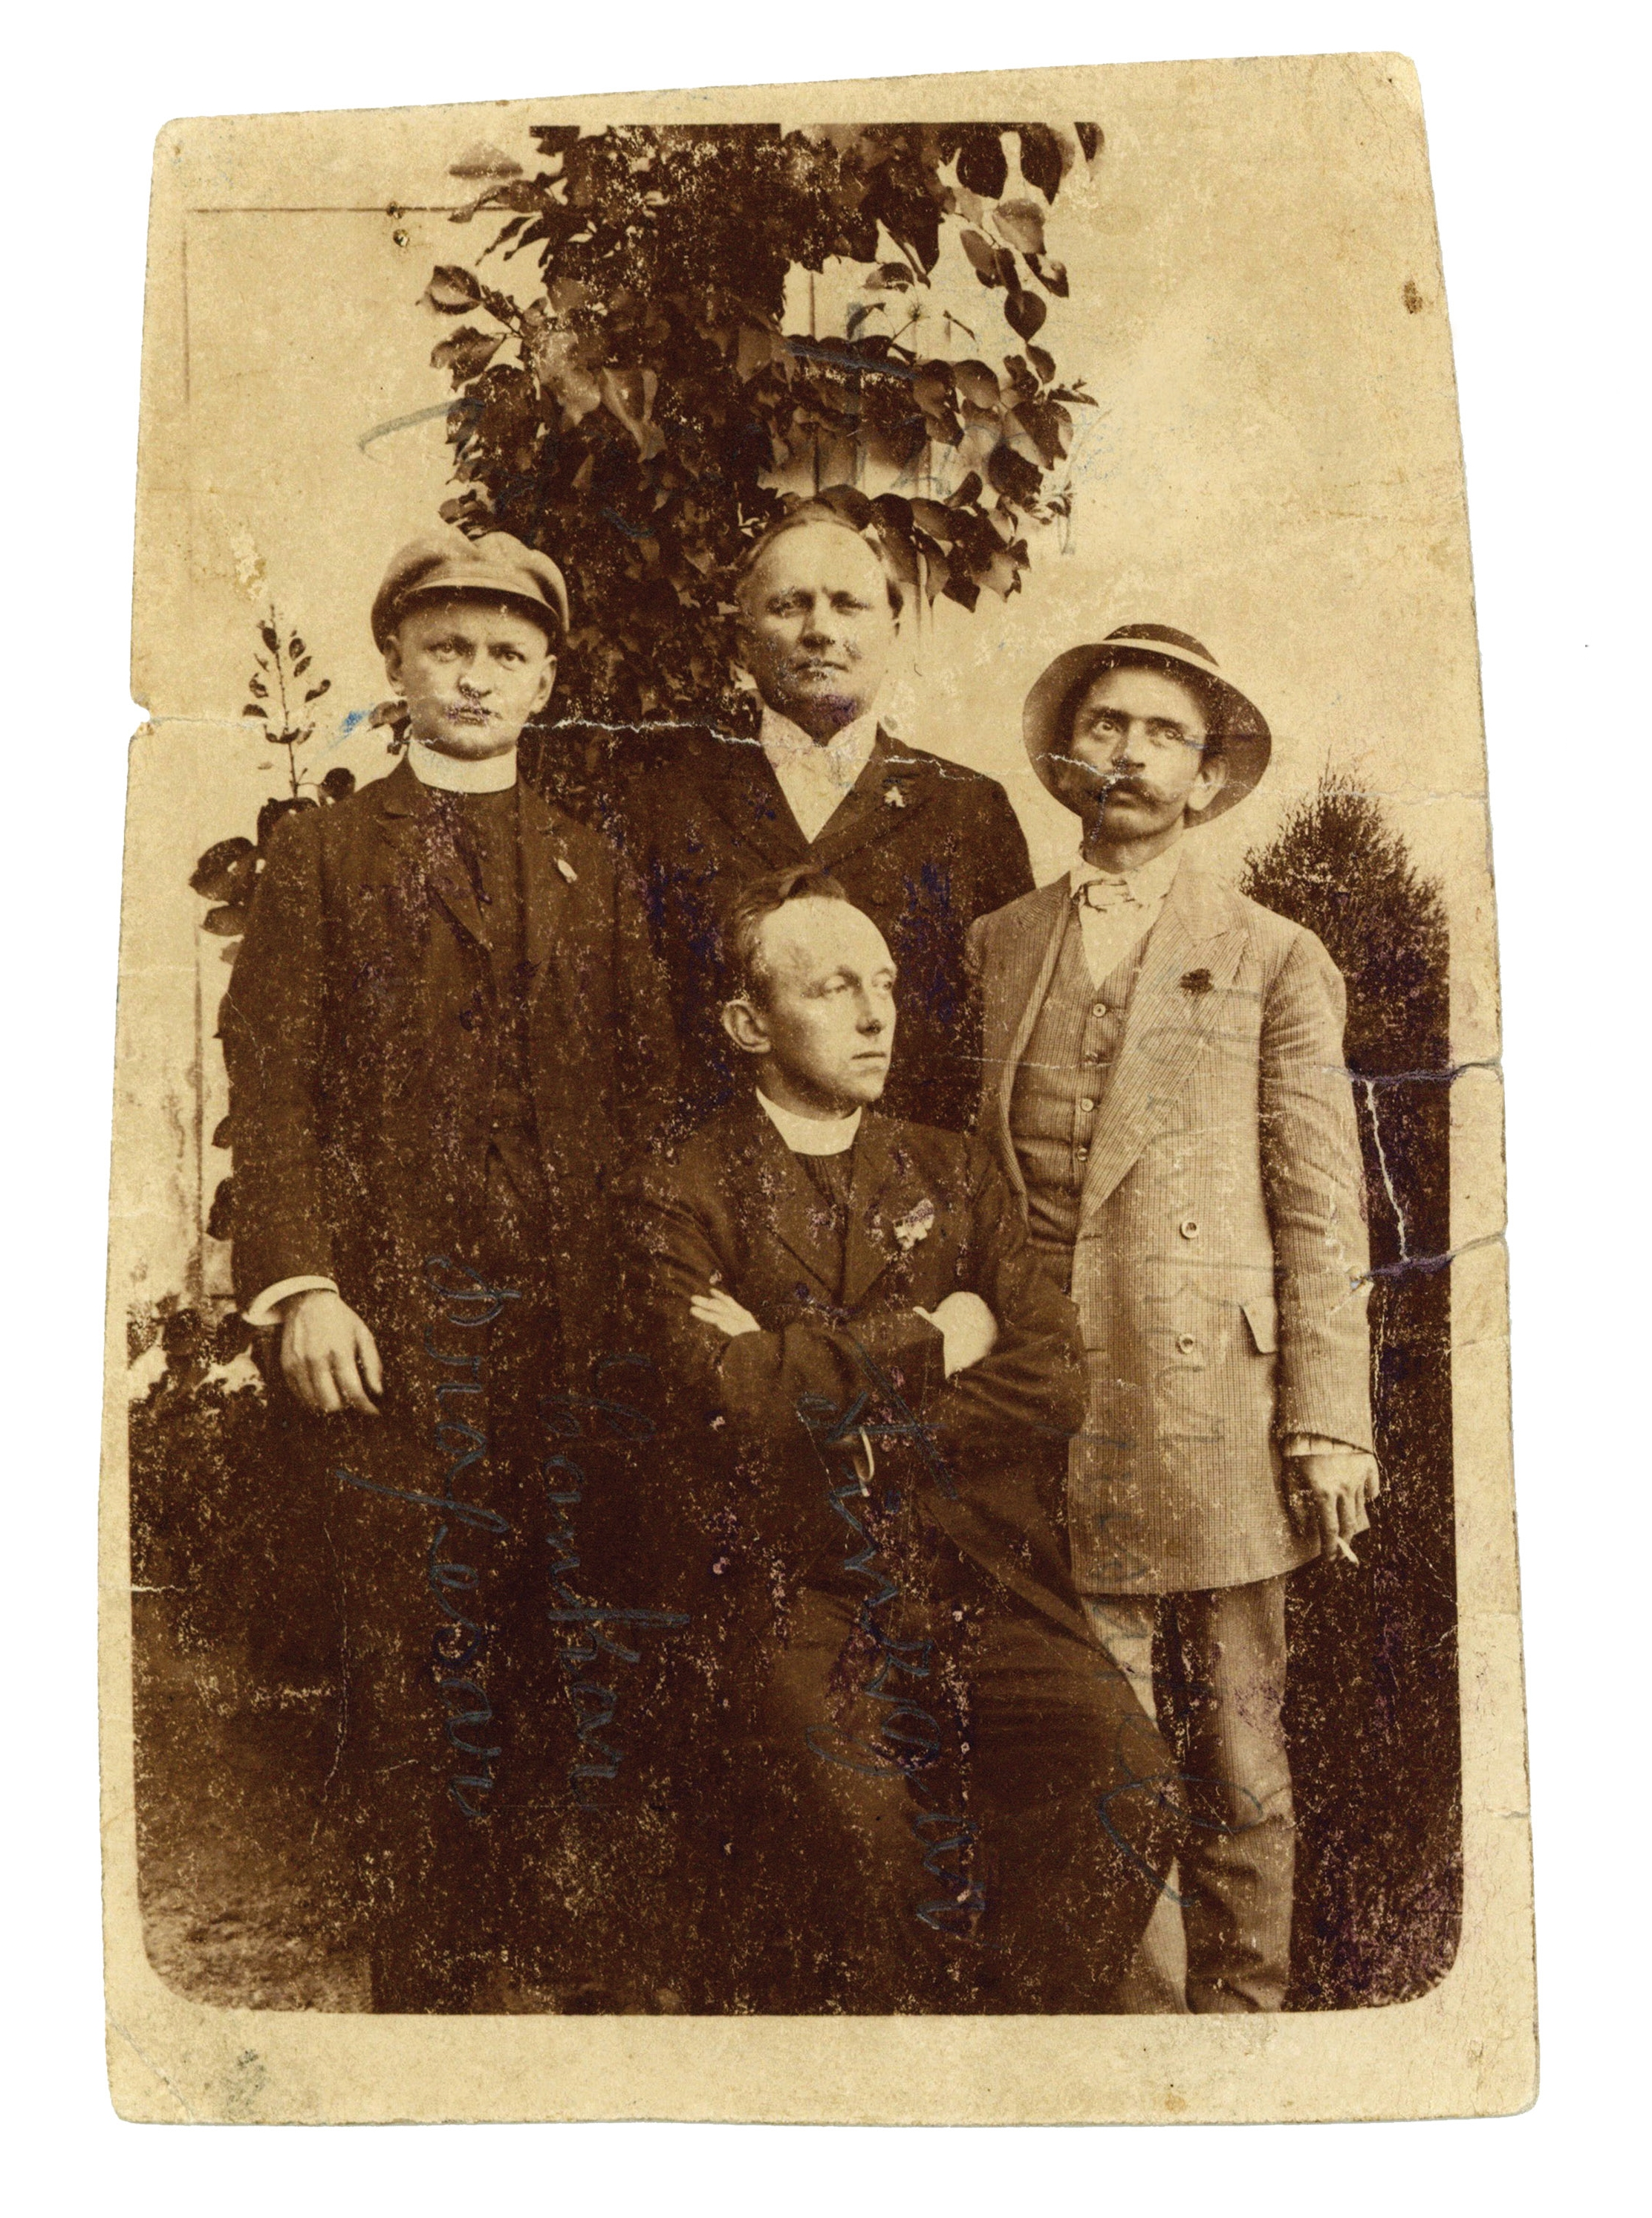 Izidor Cankar, actor Anton Verovšek and Ivan Cankar paying visit to the writer Fran Saleški Finžgar (sitting in the photo) in Sora near Medvode on 11 July, 1911.